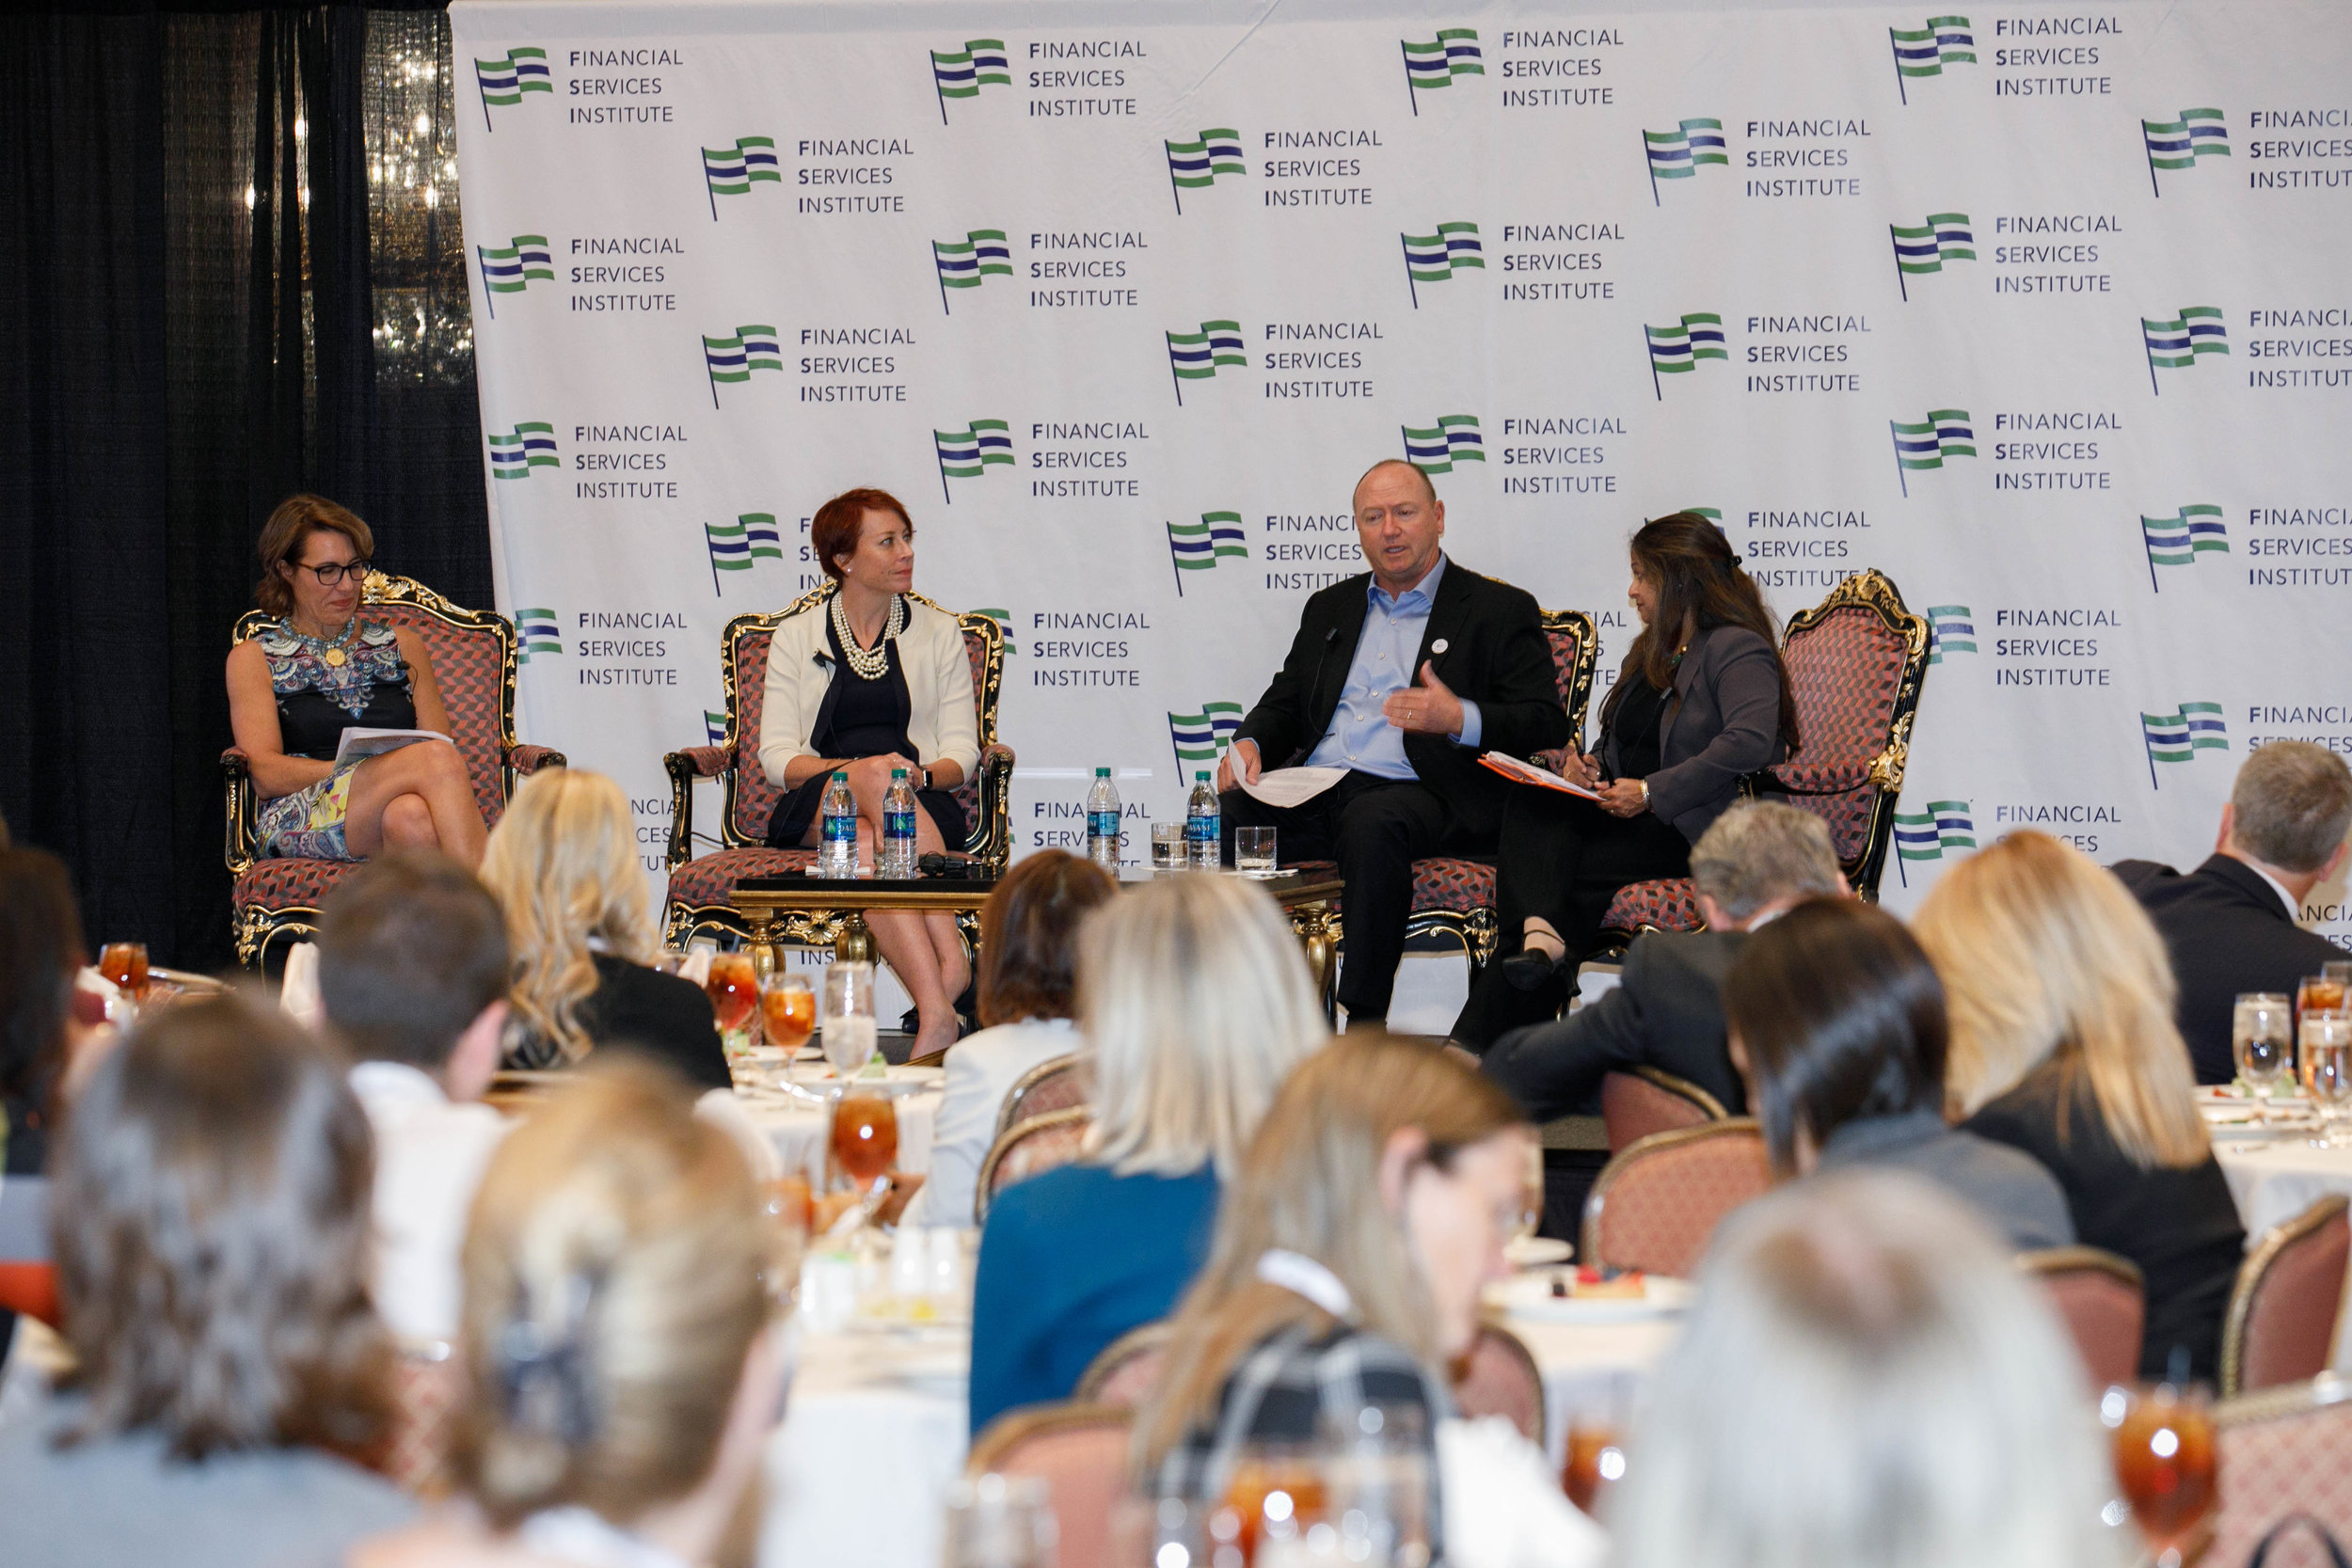 Advancing Women in Leadership Workshop panel discussion at Financial Services Institute (FSI) Forum 2018 in Salt Lake City, UT. Pictured left to right, Samantha O'Neil, Amy Philbrook, Thomas Goodson and Sarita Bhagwat. Photo Credit:  Kinser Studios